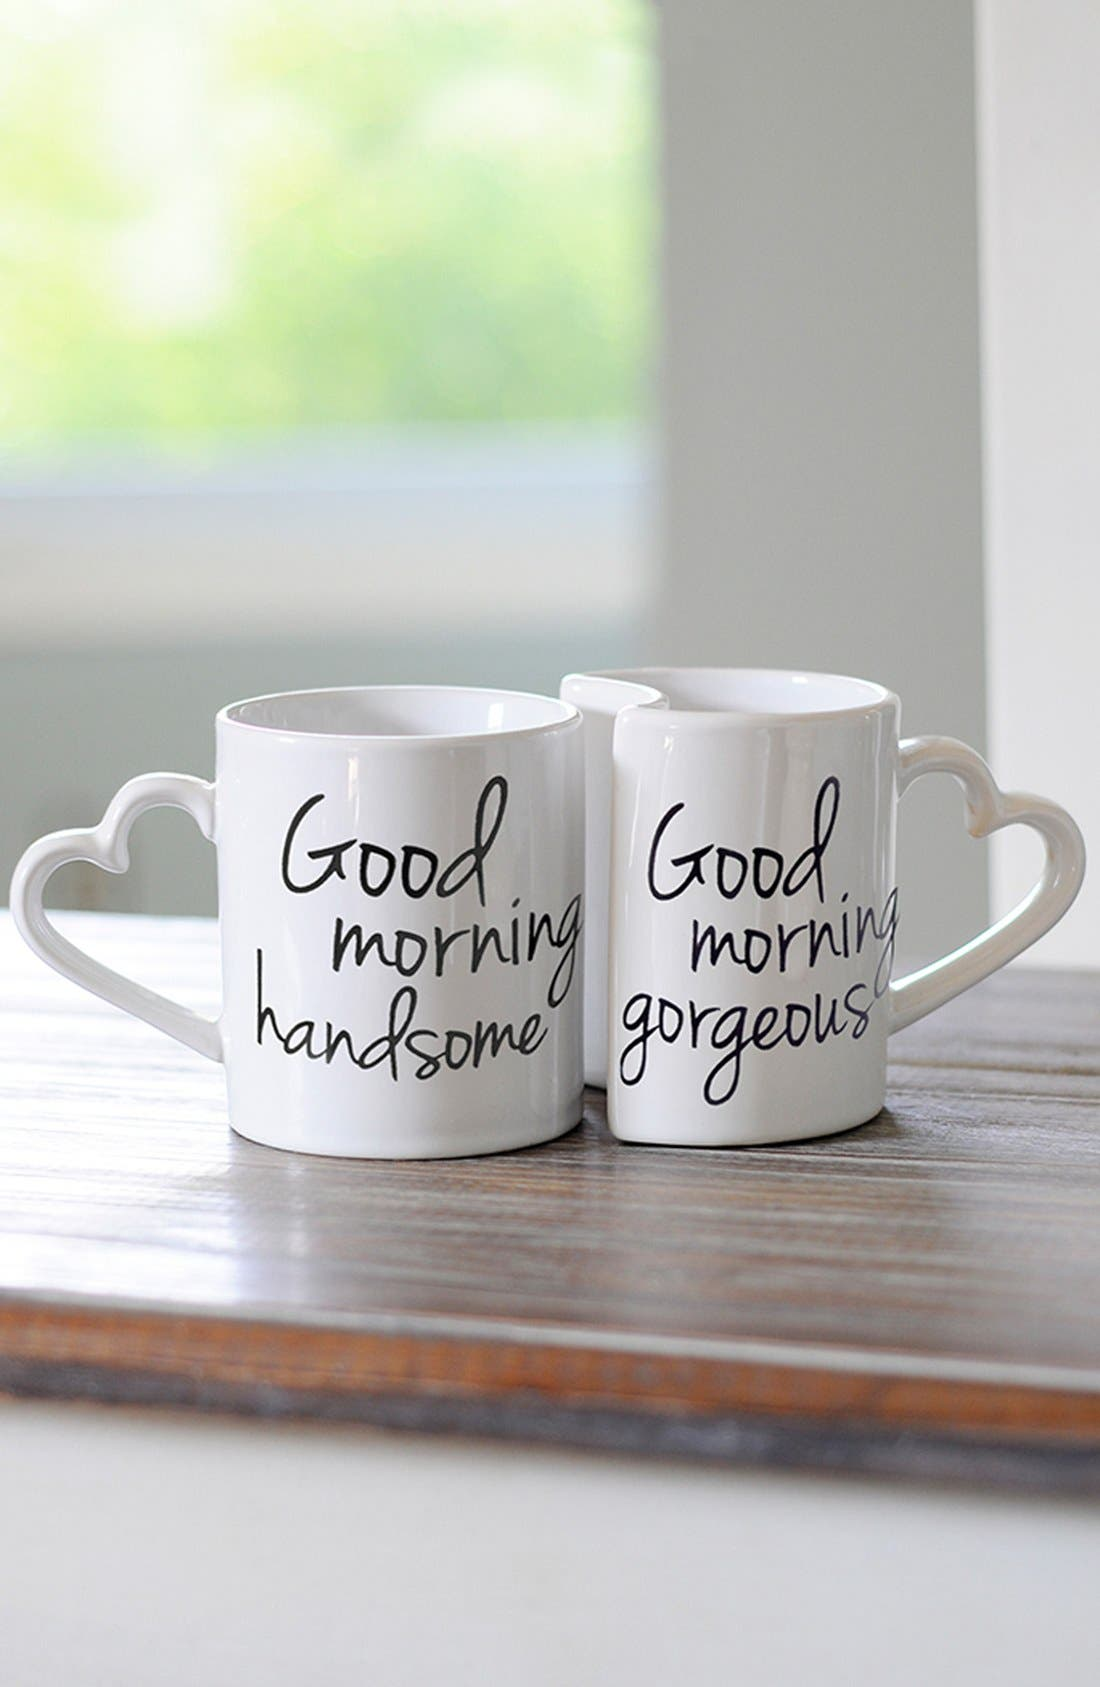 Alternate Image 1 Selected - Cathy's Concepts 'Good Morning' Ceramic Coffee Mugs (Set of 2)